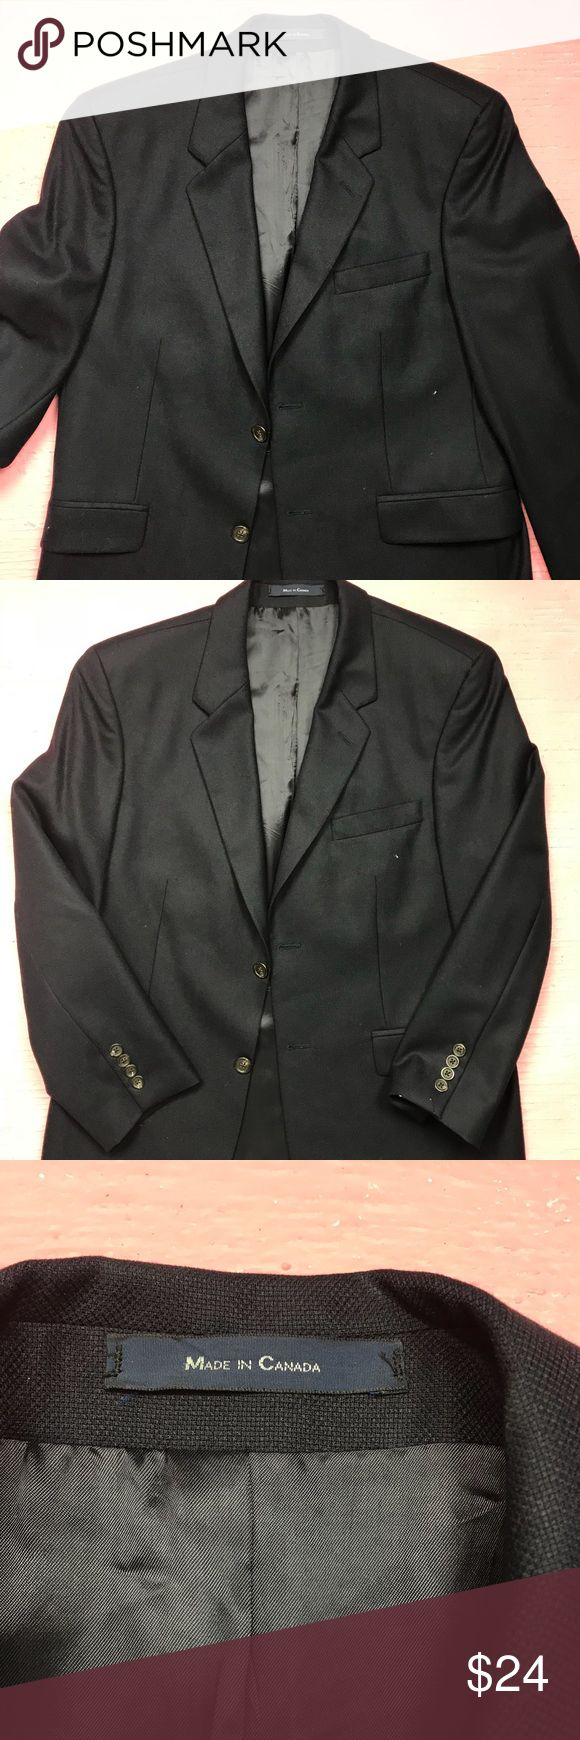 "RALPH LAUREN for Dillards blue blazer coat 38S Ralph Lauren for Dillards blazer. Dark blue but the lighting makes it look brighter than it is. Size 38 S. 100% Wool. Made in Canada. Sleeve is 22.5"". Length is 30"". Ralph Lauren Suits & Blazers Sport Coats & Blazers"